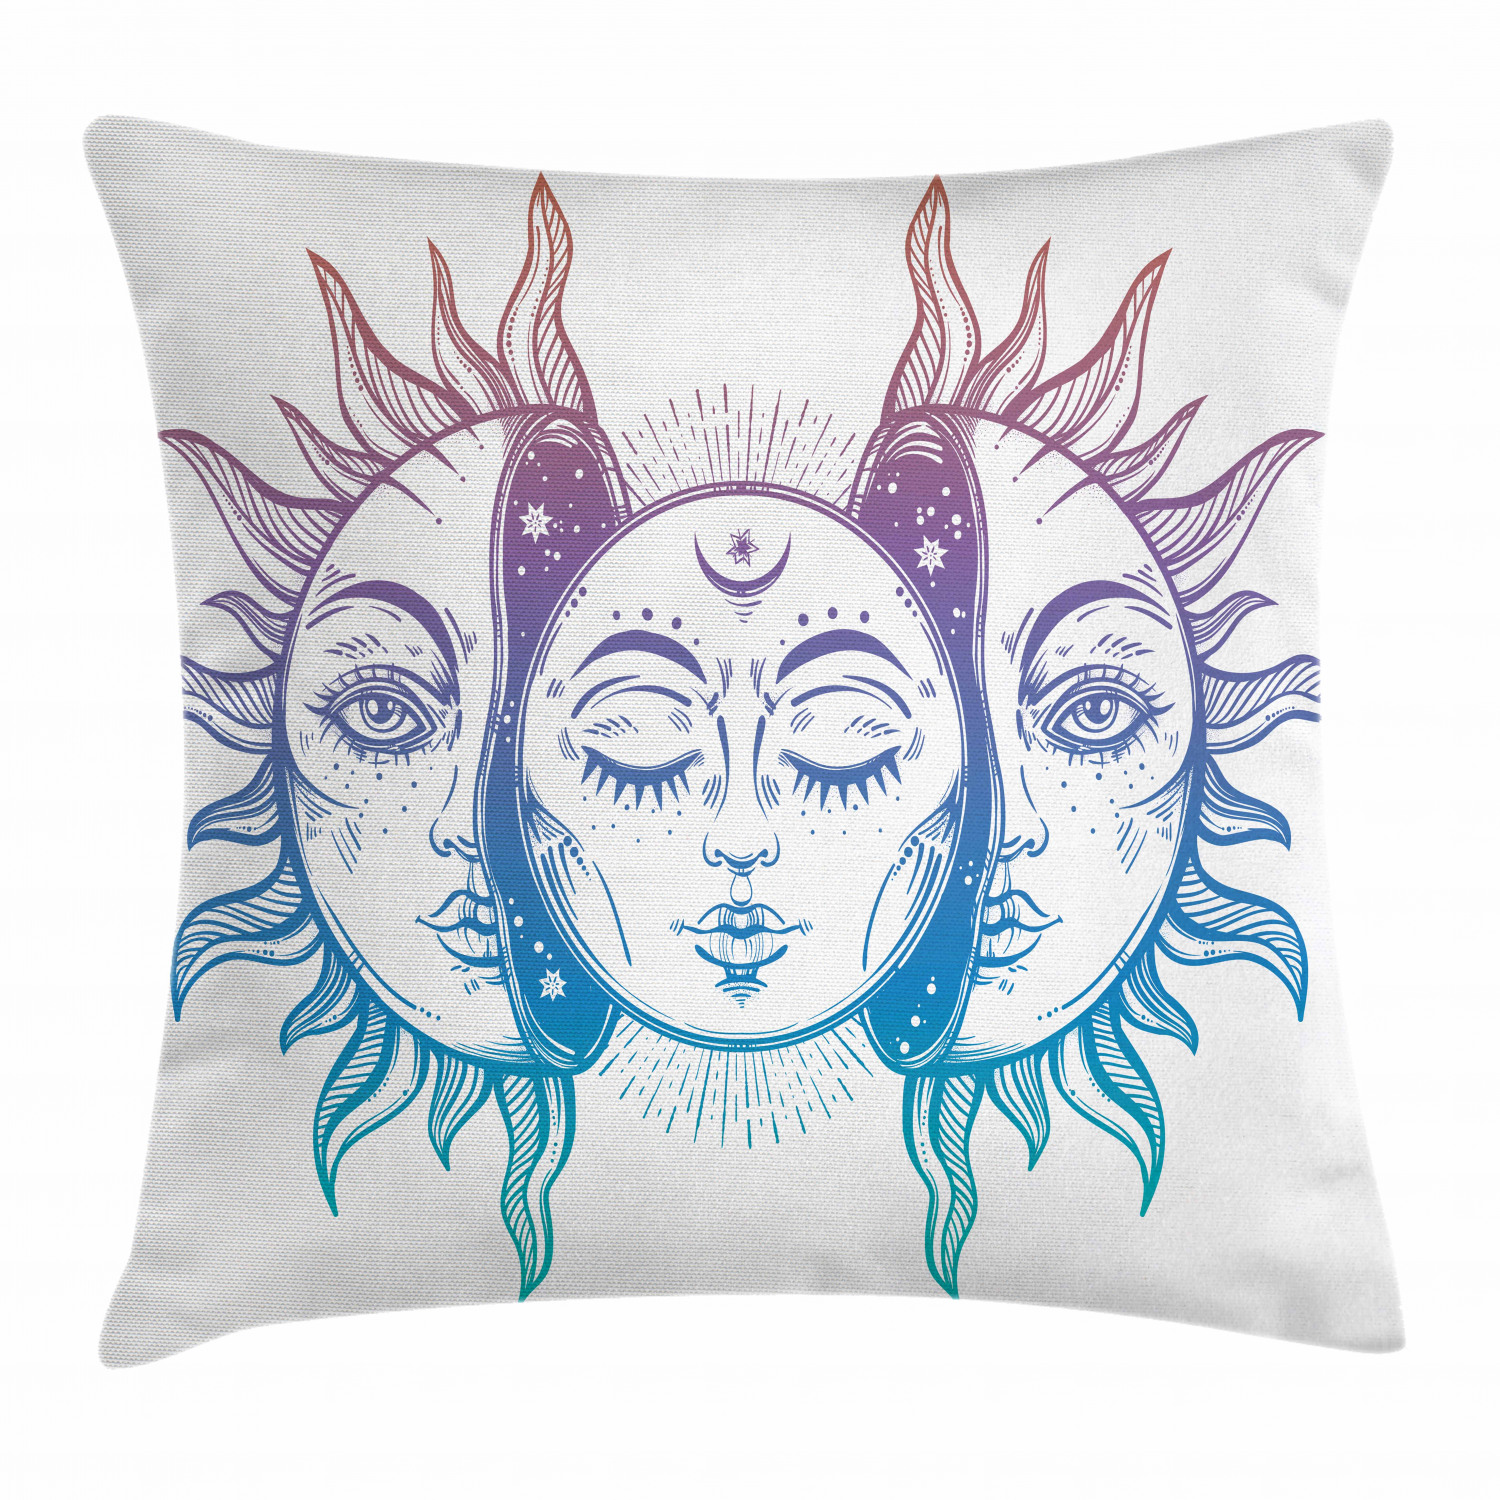 moon throw pillow cushion cover psychedelic representation heavenly bodies faces eastern oriental inspired image decorative square accent pillow